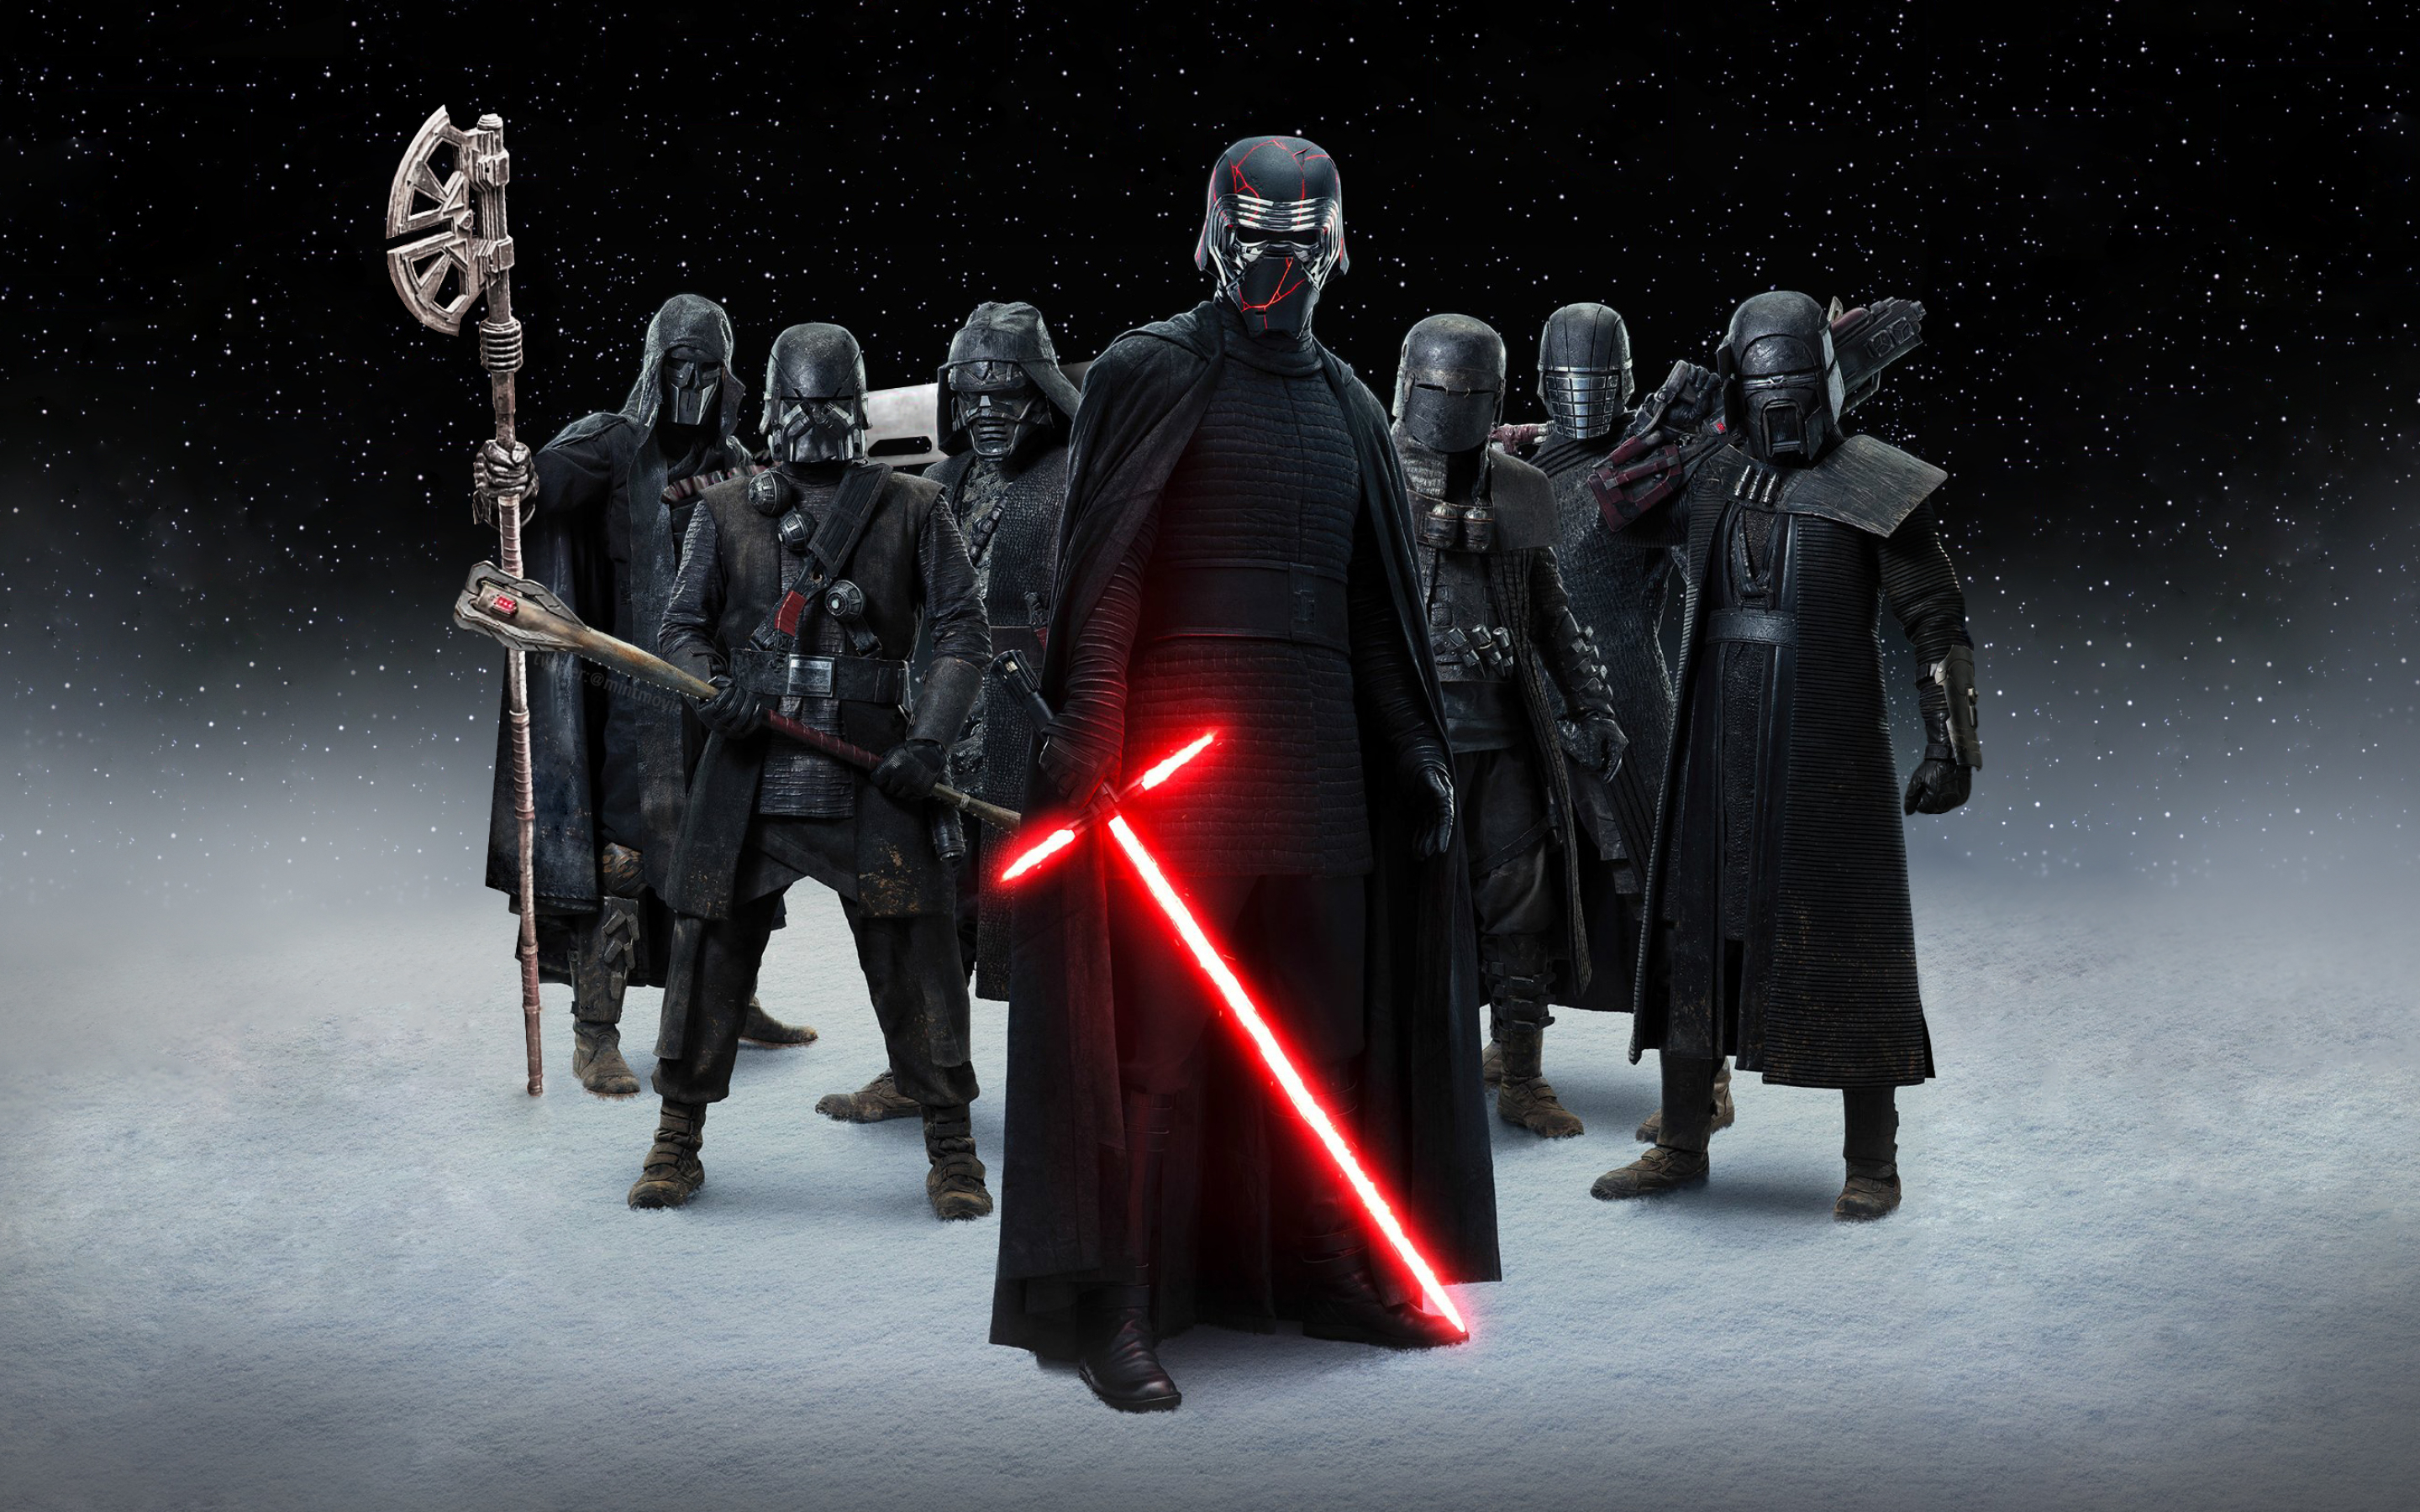 2880x1800 Knights Of Ren Star Wars Macbook Pro Retina Wallpaper Hd Movies 4k Wallpapers Images Photos And Background